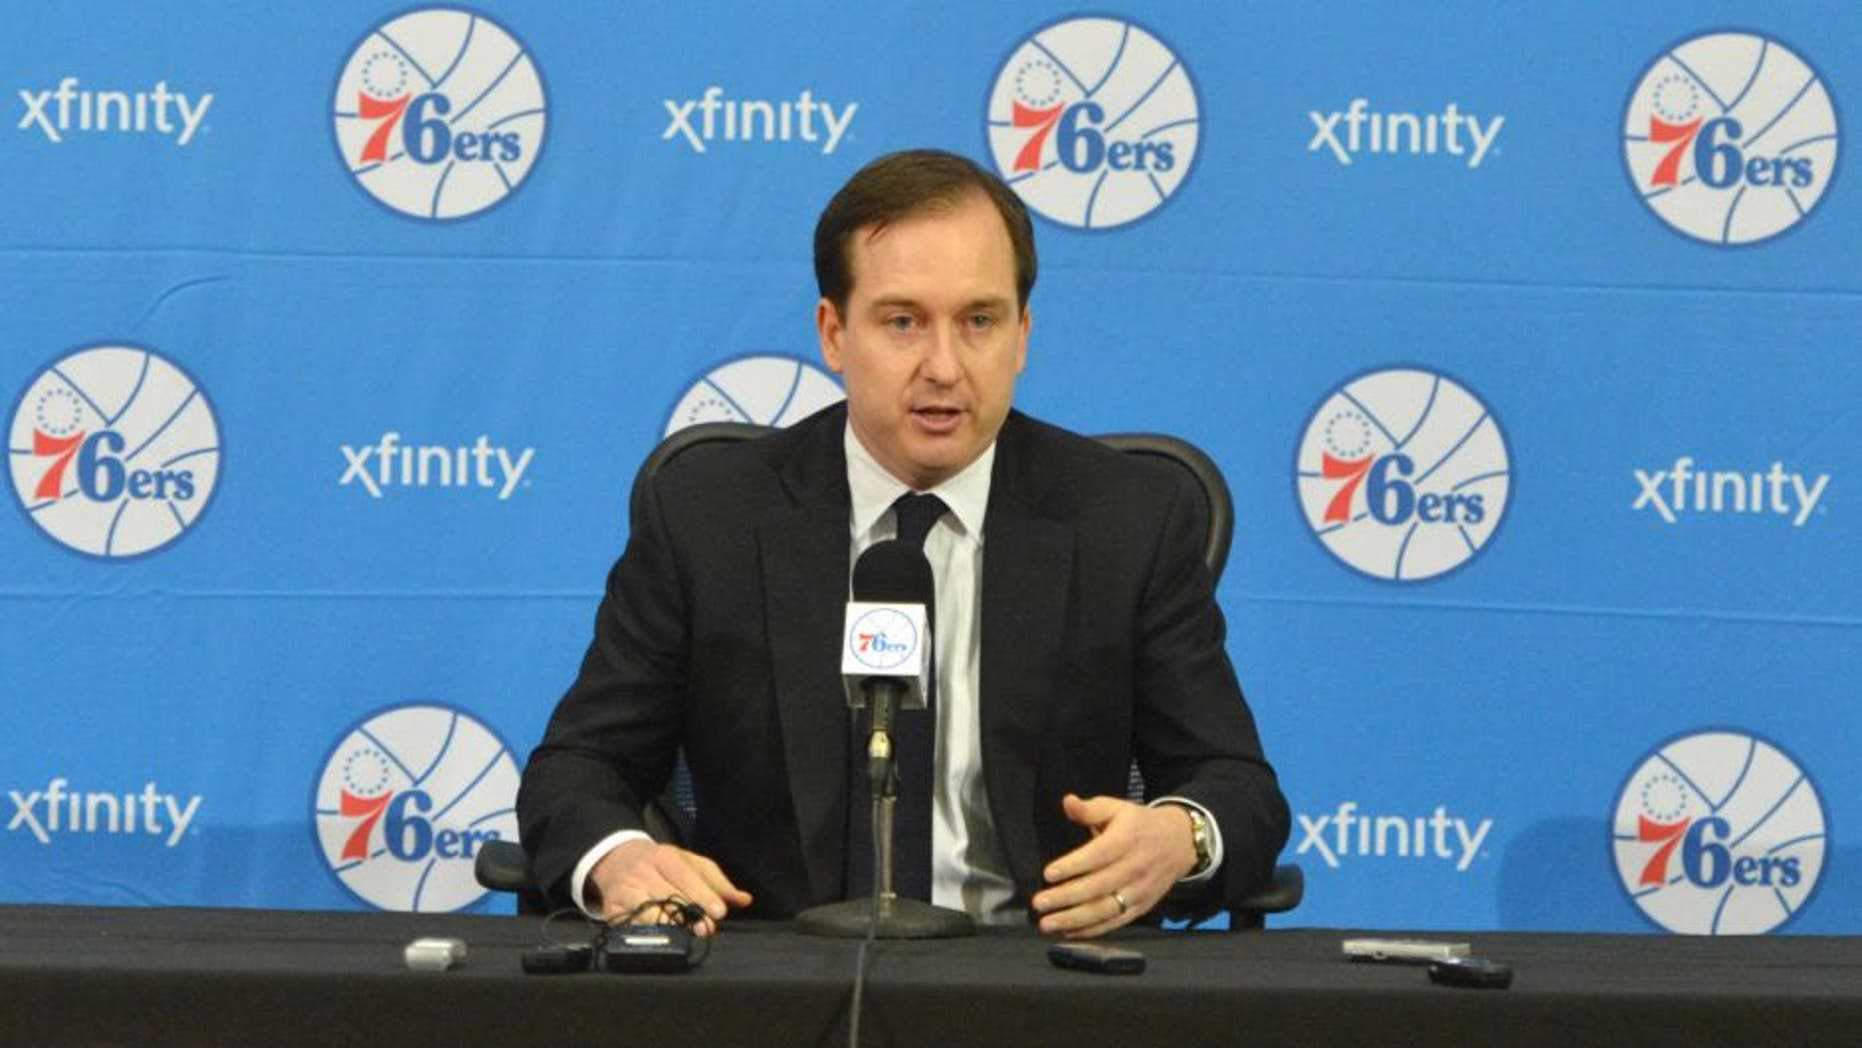 PHILADELPHIA, PA - JUNE 27: Sam Hinkie, President of Basketball Operations and General Manager of the Philadelphia 76ers, speaks with the media during a press conference on June 27, 2014 at the Philadelphia College of Osteopathic Medicine in Philadelphia, Pennsylvania. NOTE TO USER: User expressly acknowledges and agrees that, by downloading and or using this photograph, User is consenting to the terms and conditions of the Getty Images License Agreement. Mandatory Copyright Notice: Copyright 2014 NBAE (Photo by Jesse D. Garrabrant/NBAE via Getty Images)